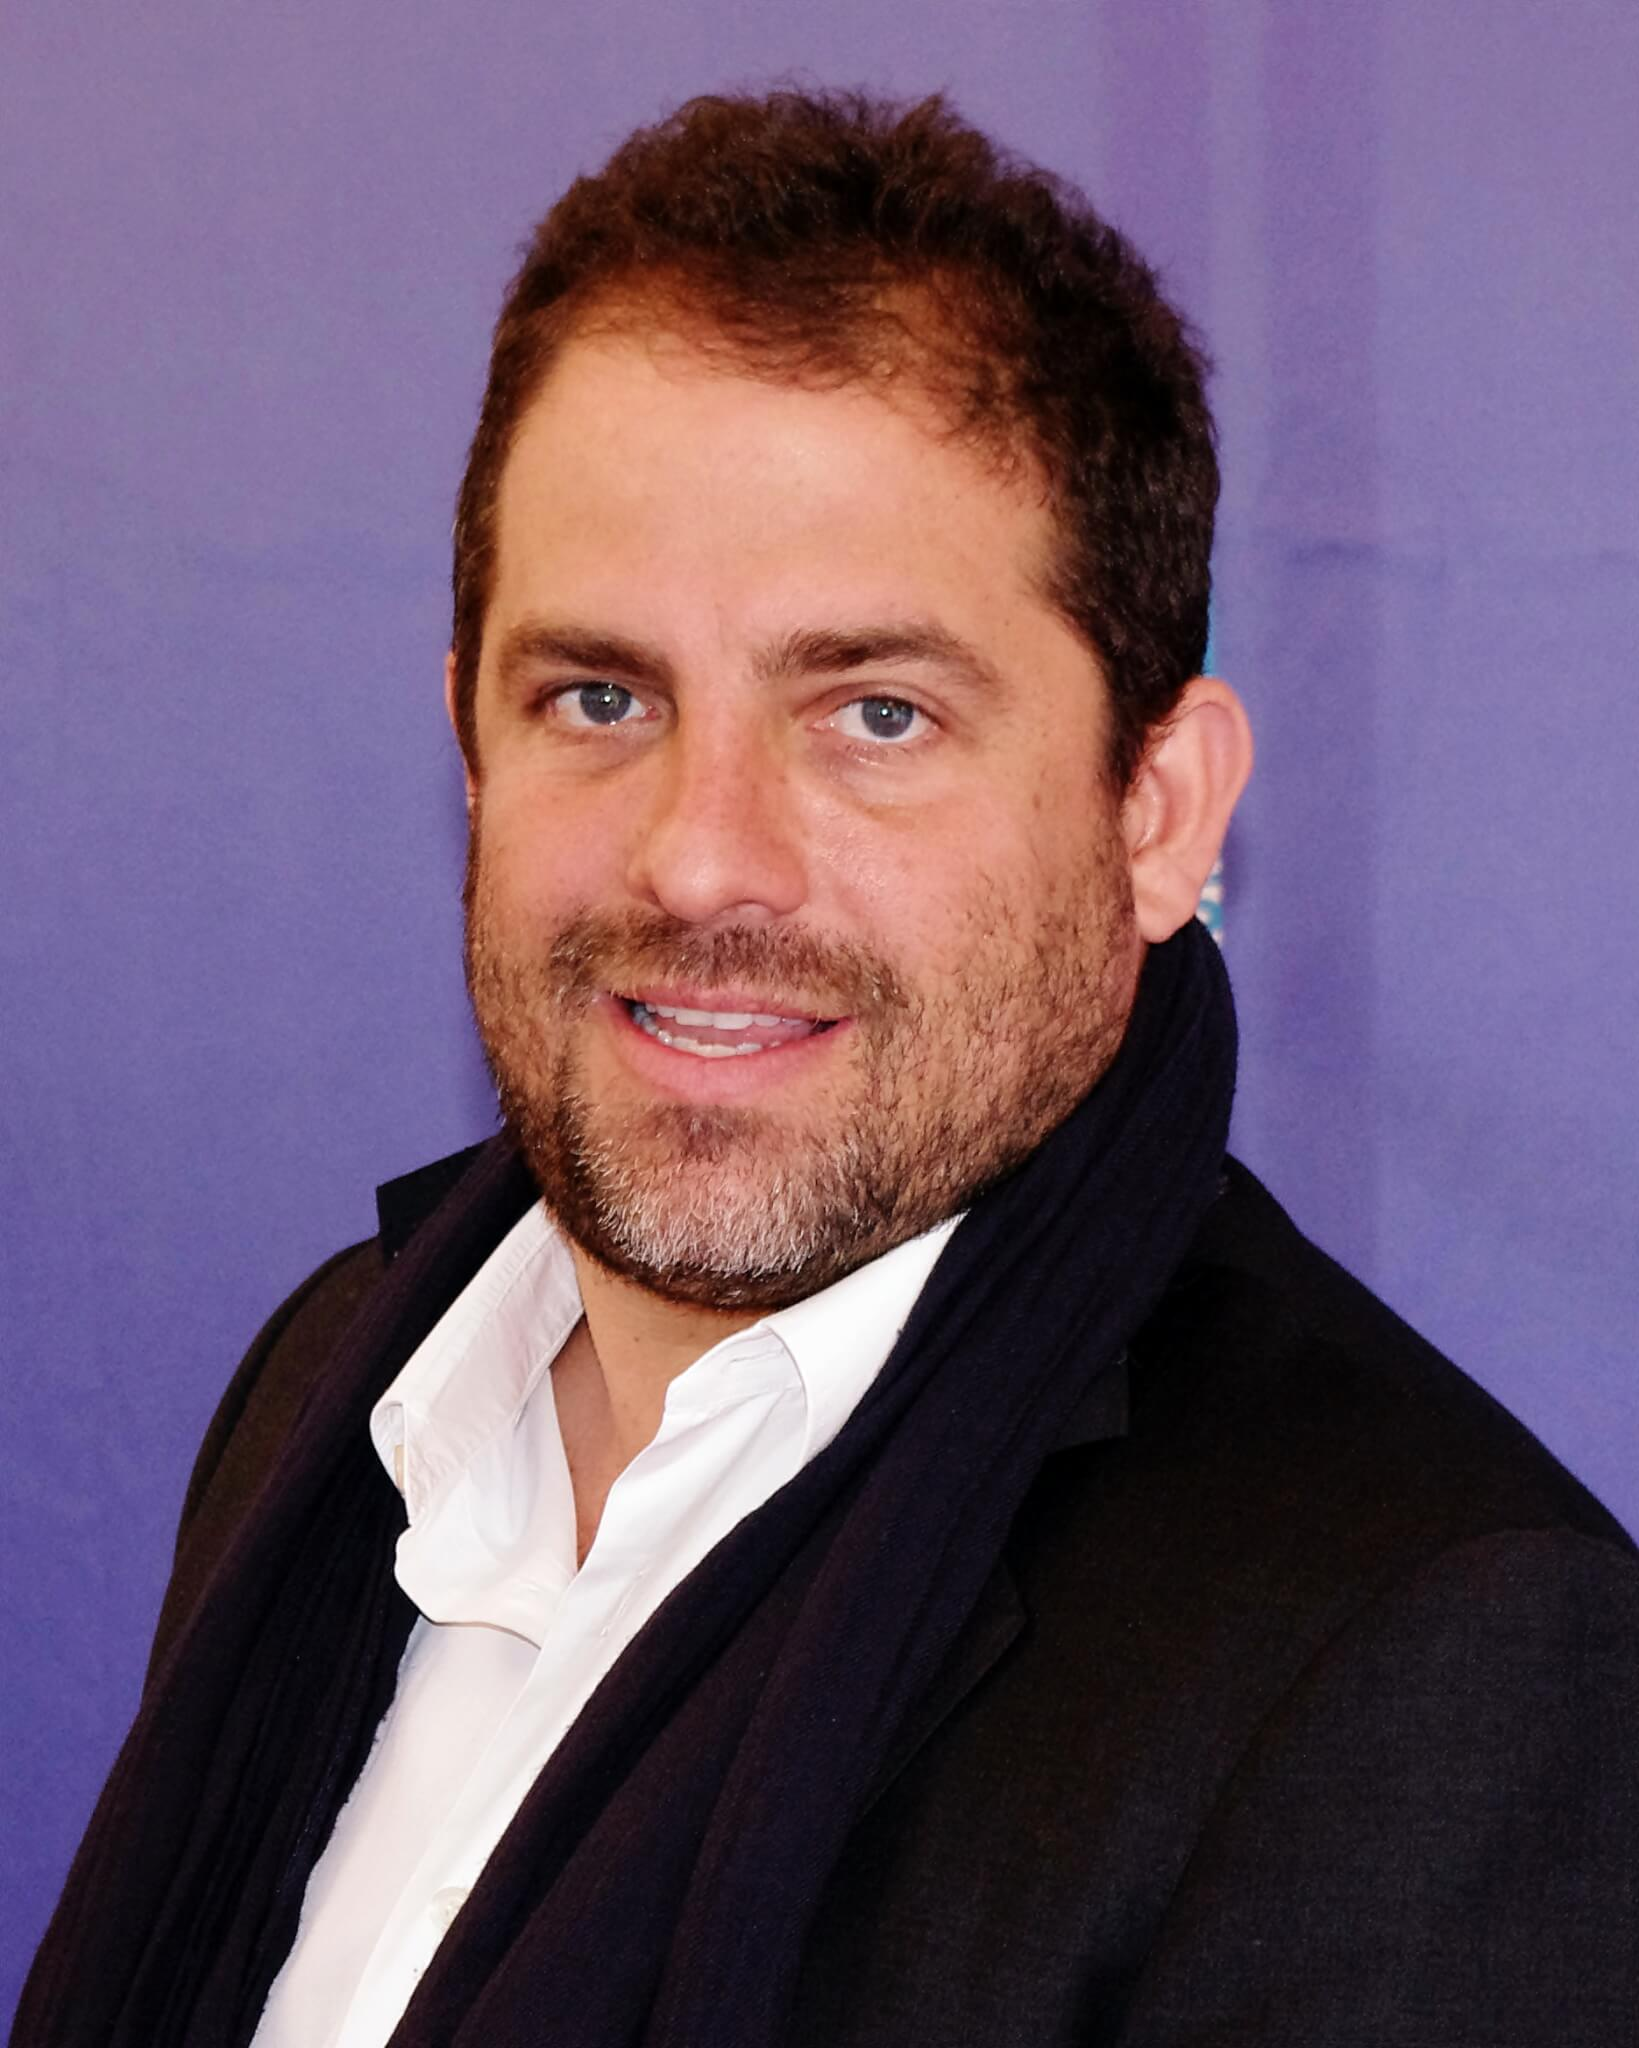 Diageo 'reviewing' relationship with Hilhaven partner Brett Ratner